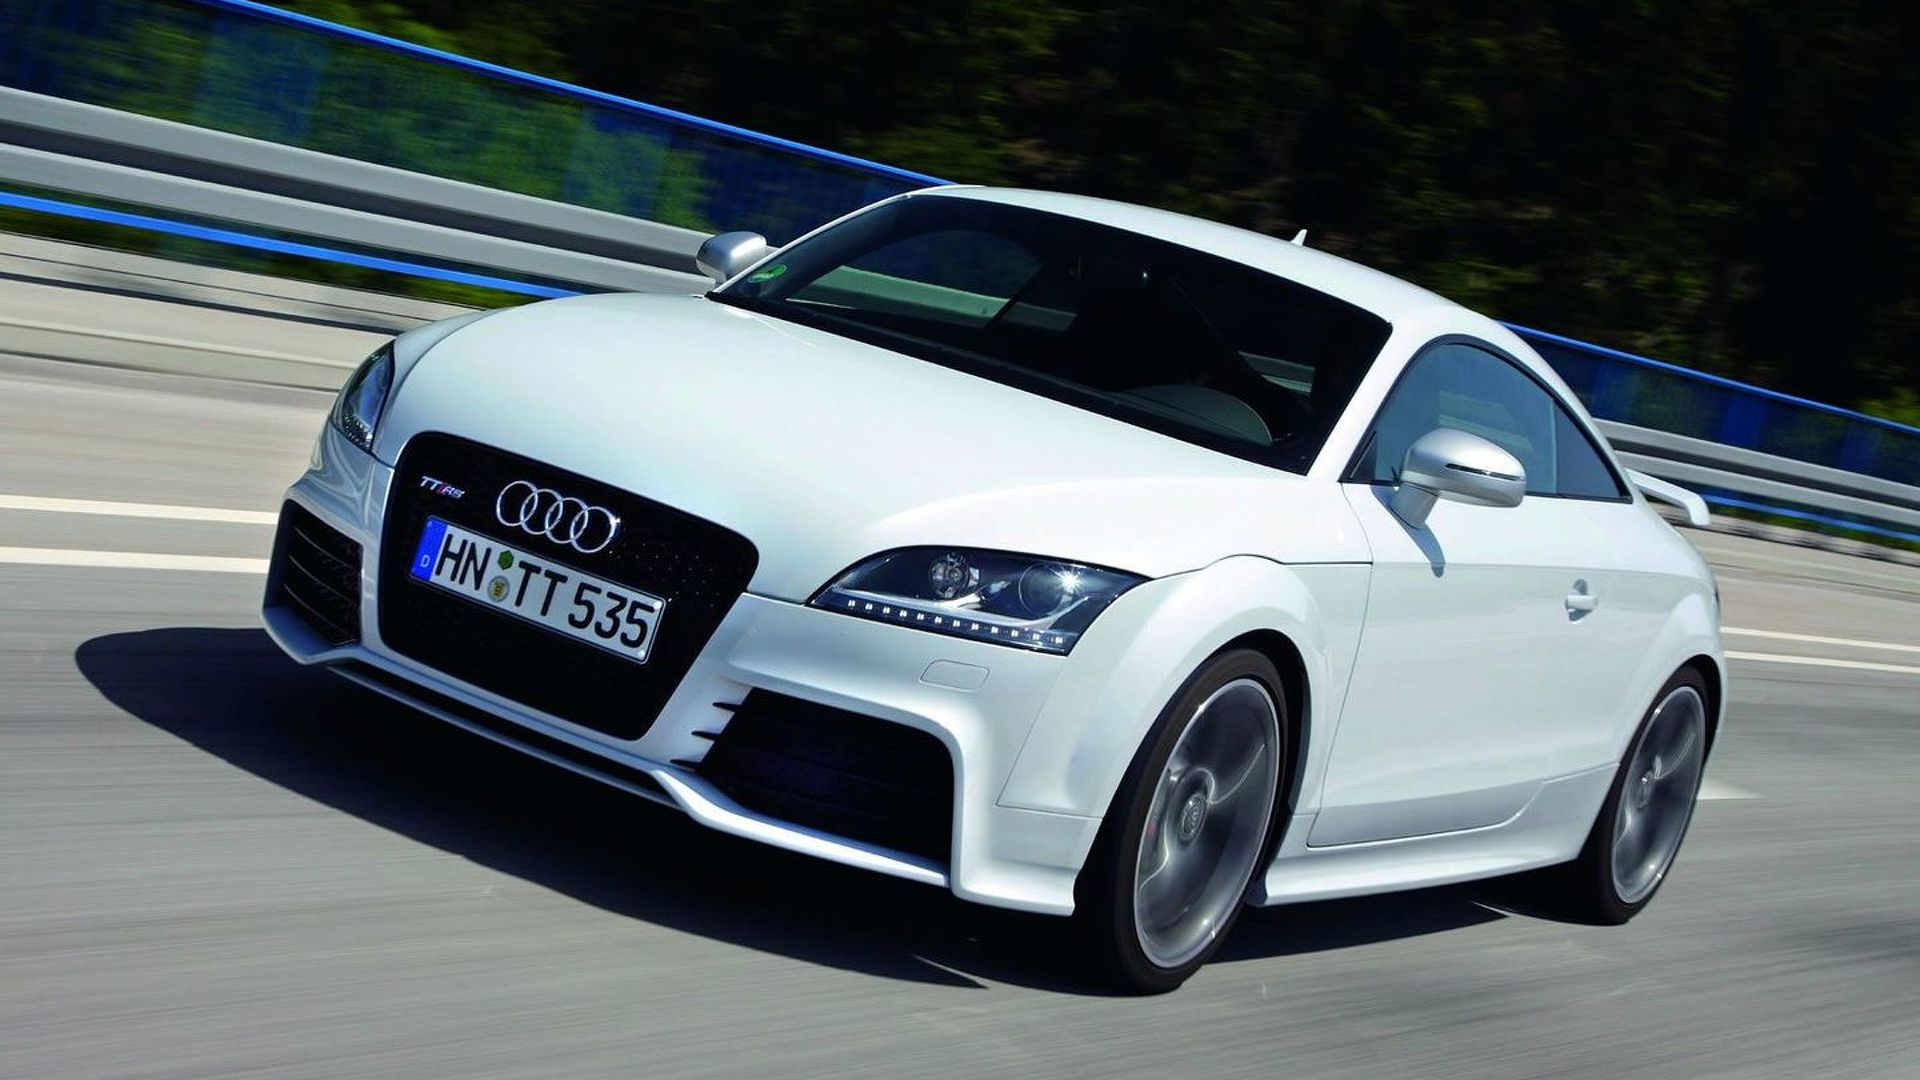 Audi TT RS confirmed for U.S. market